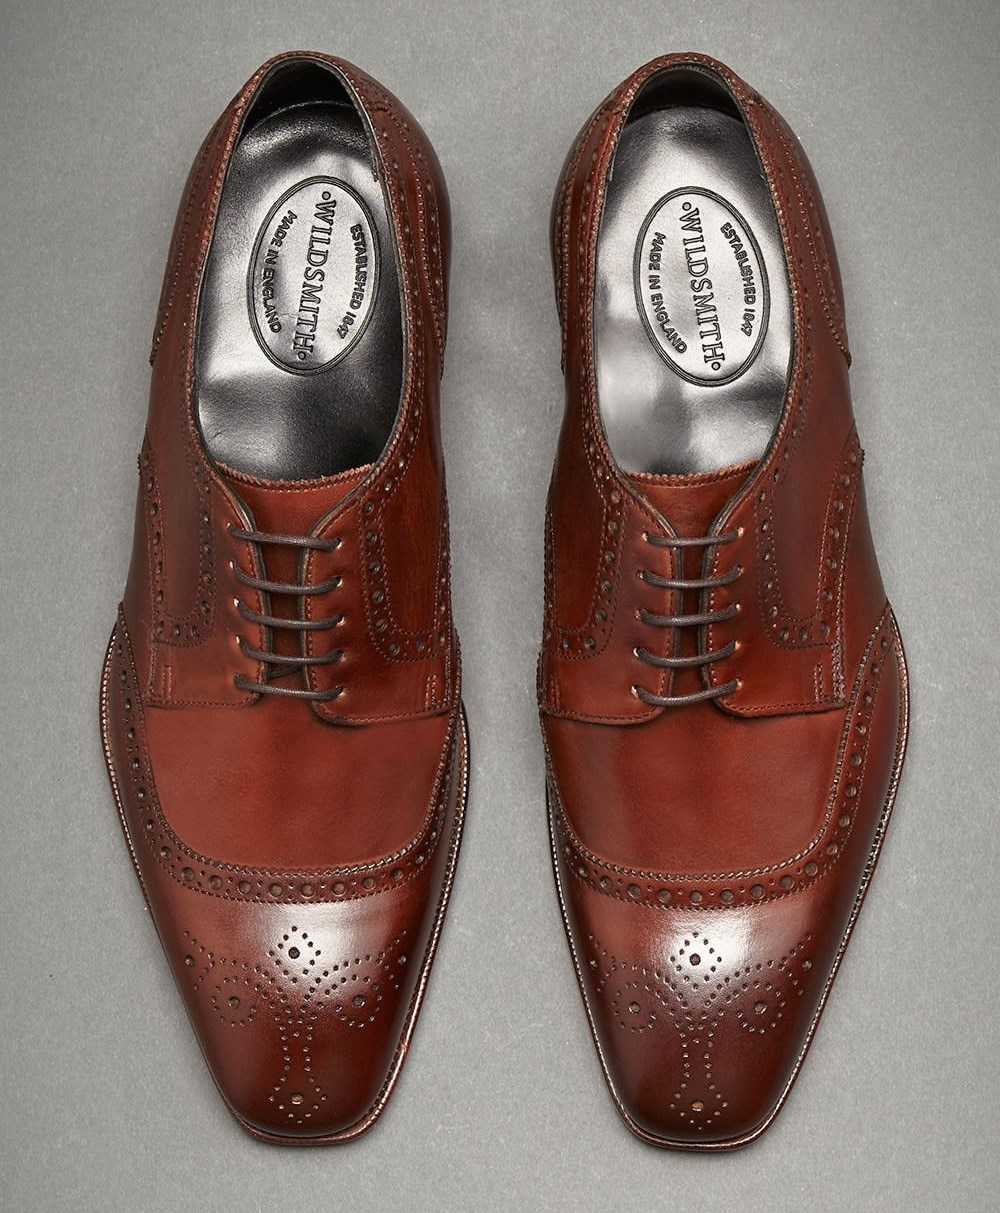 80d6d61ca80 Wildsmith Back in Action and Now Live! – The Shoe Snob Blog